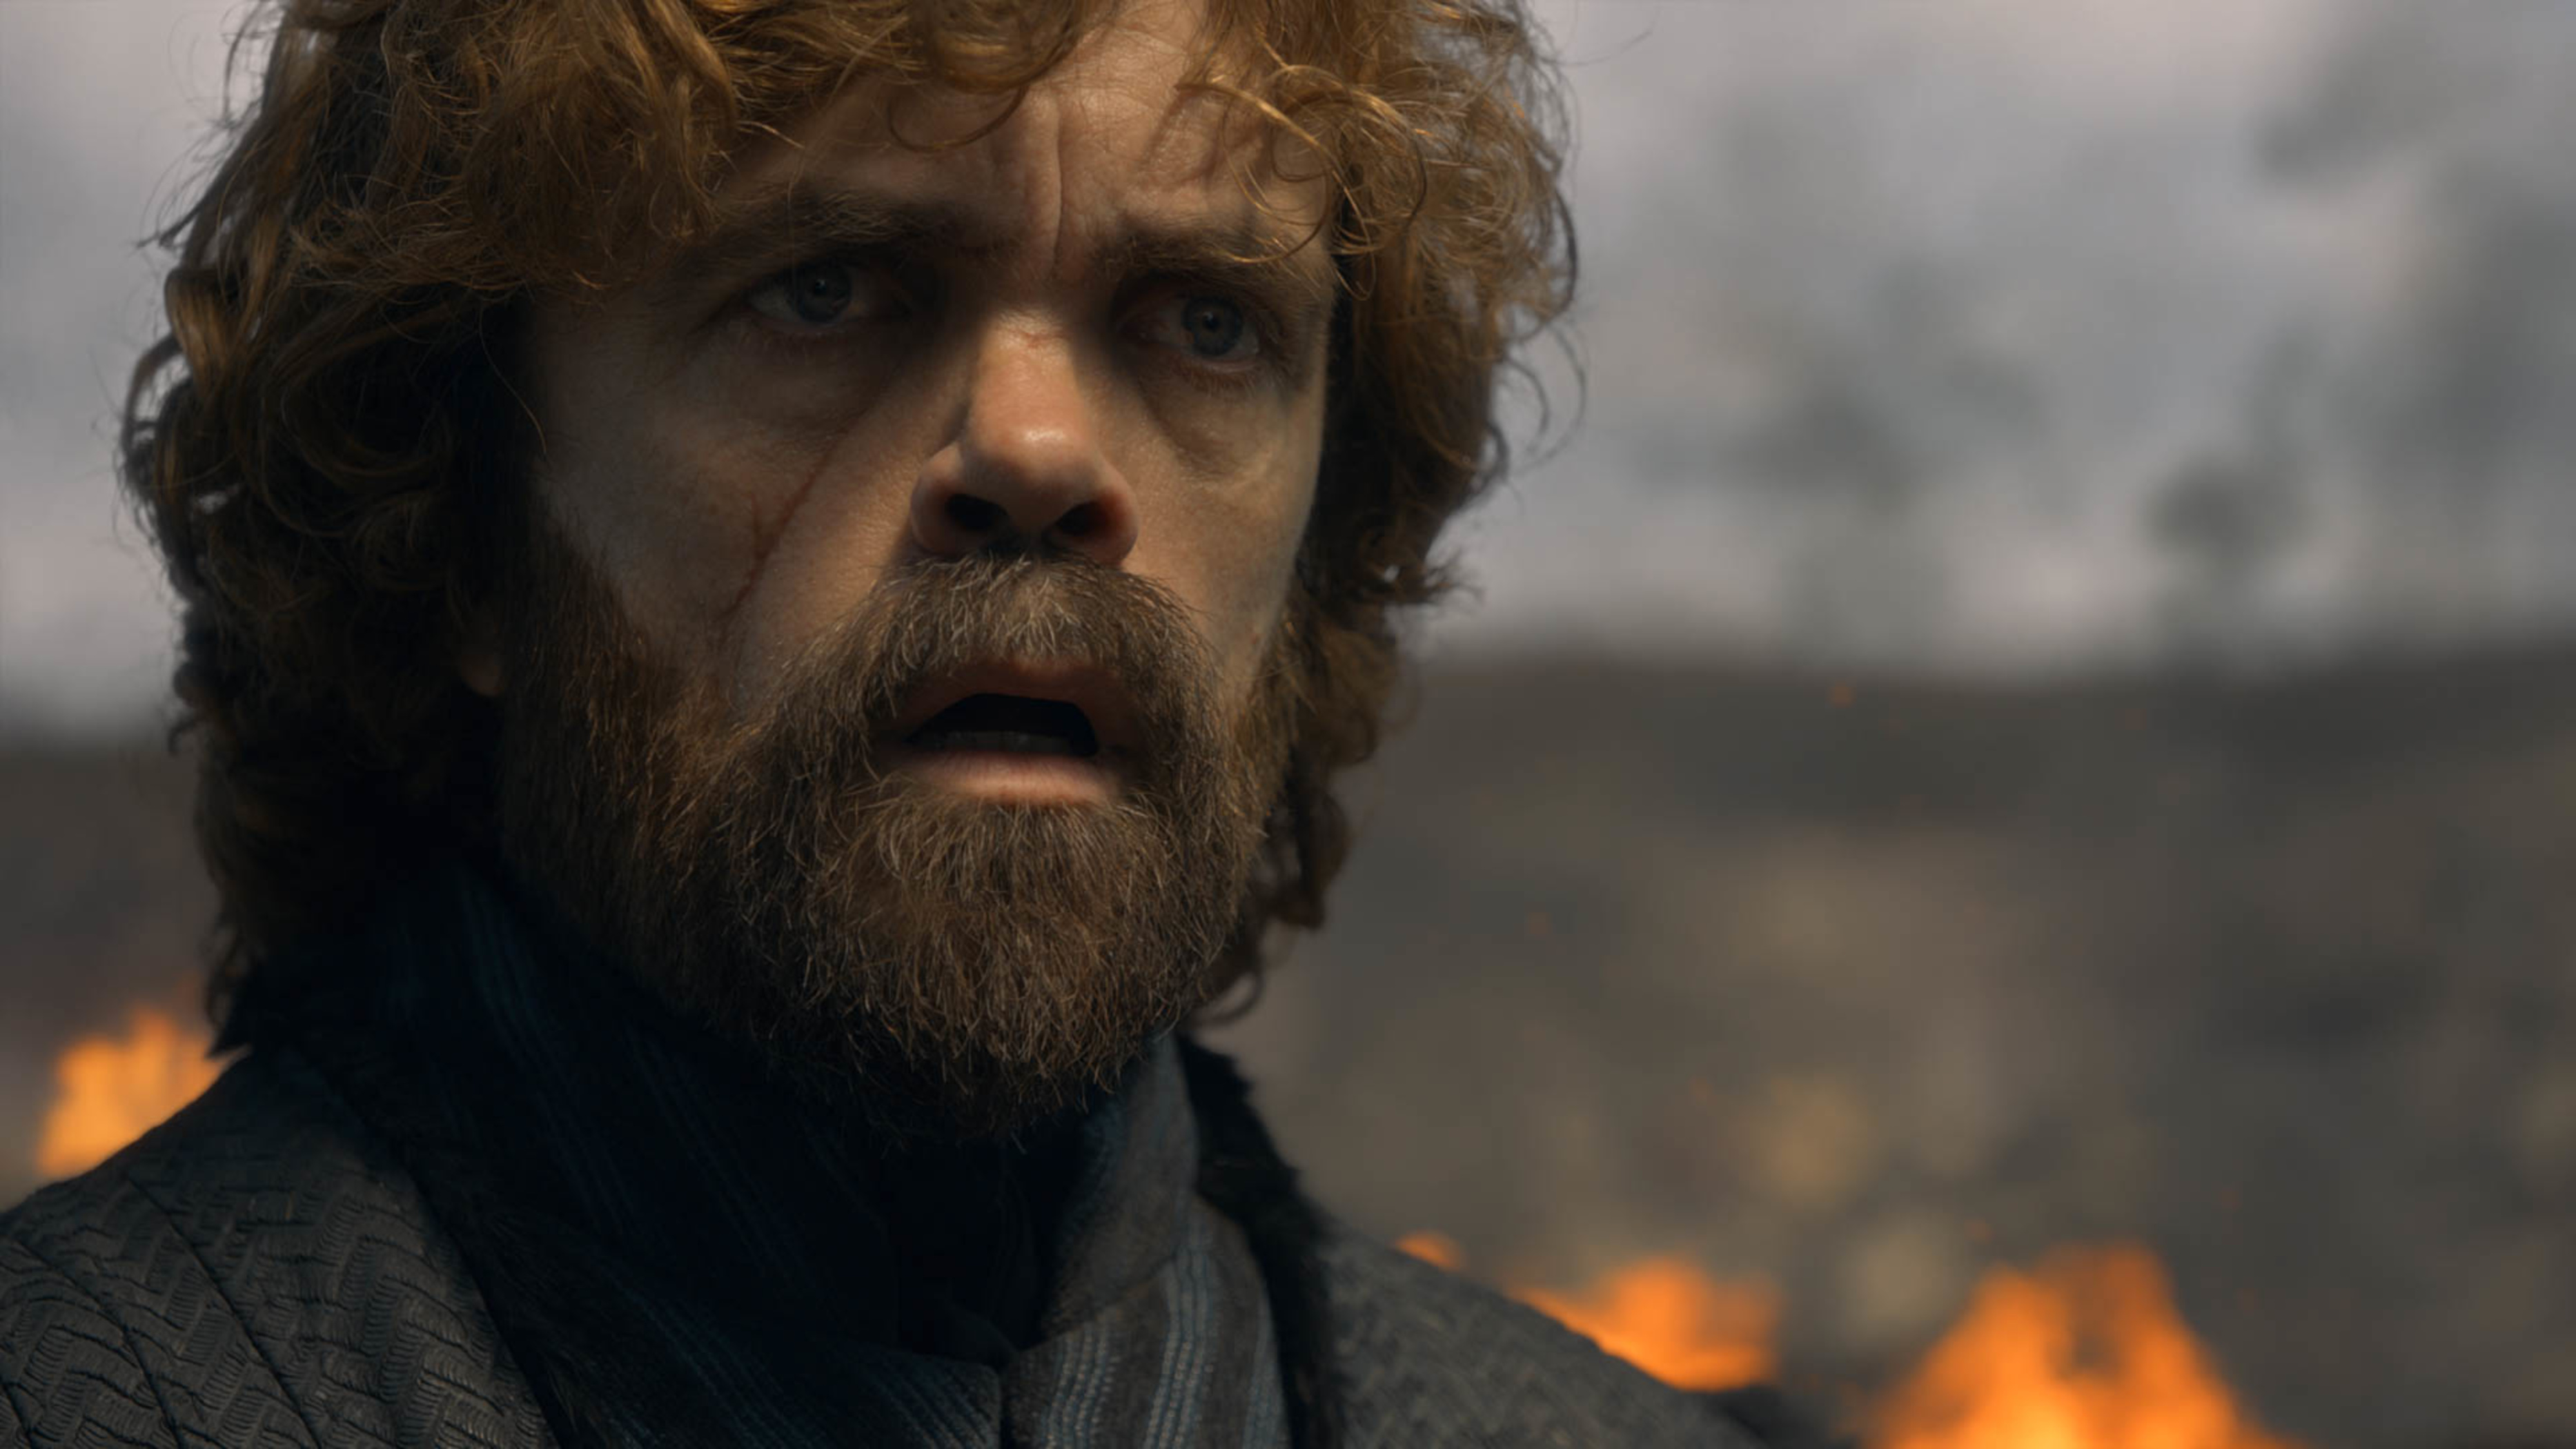 Peter Dinklage as Tyrion Lannister Game of Thrones